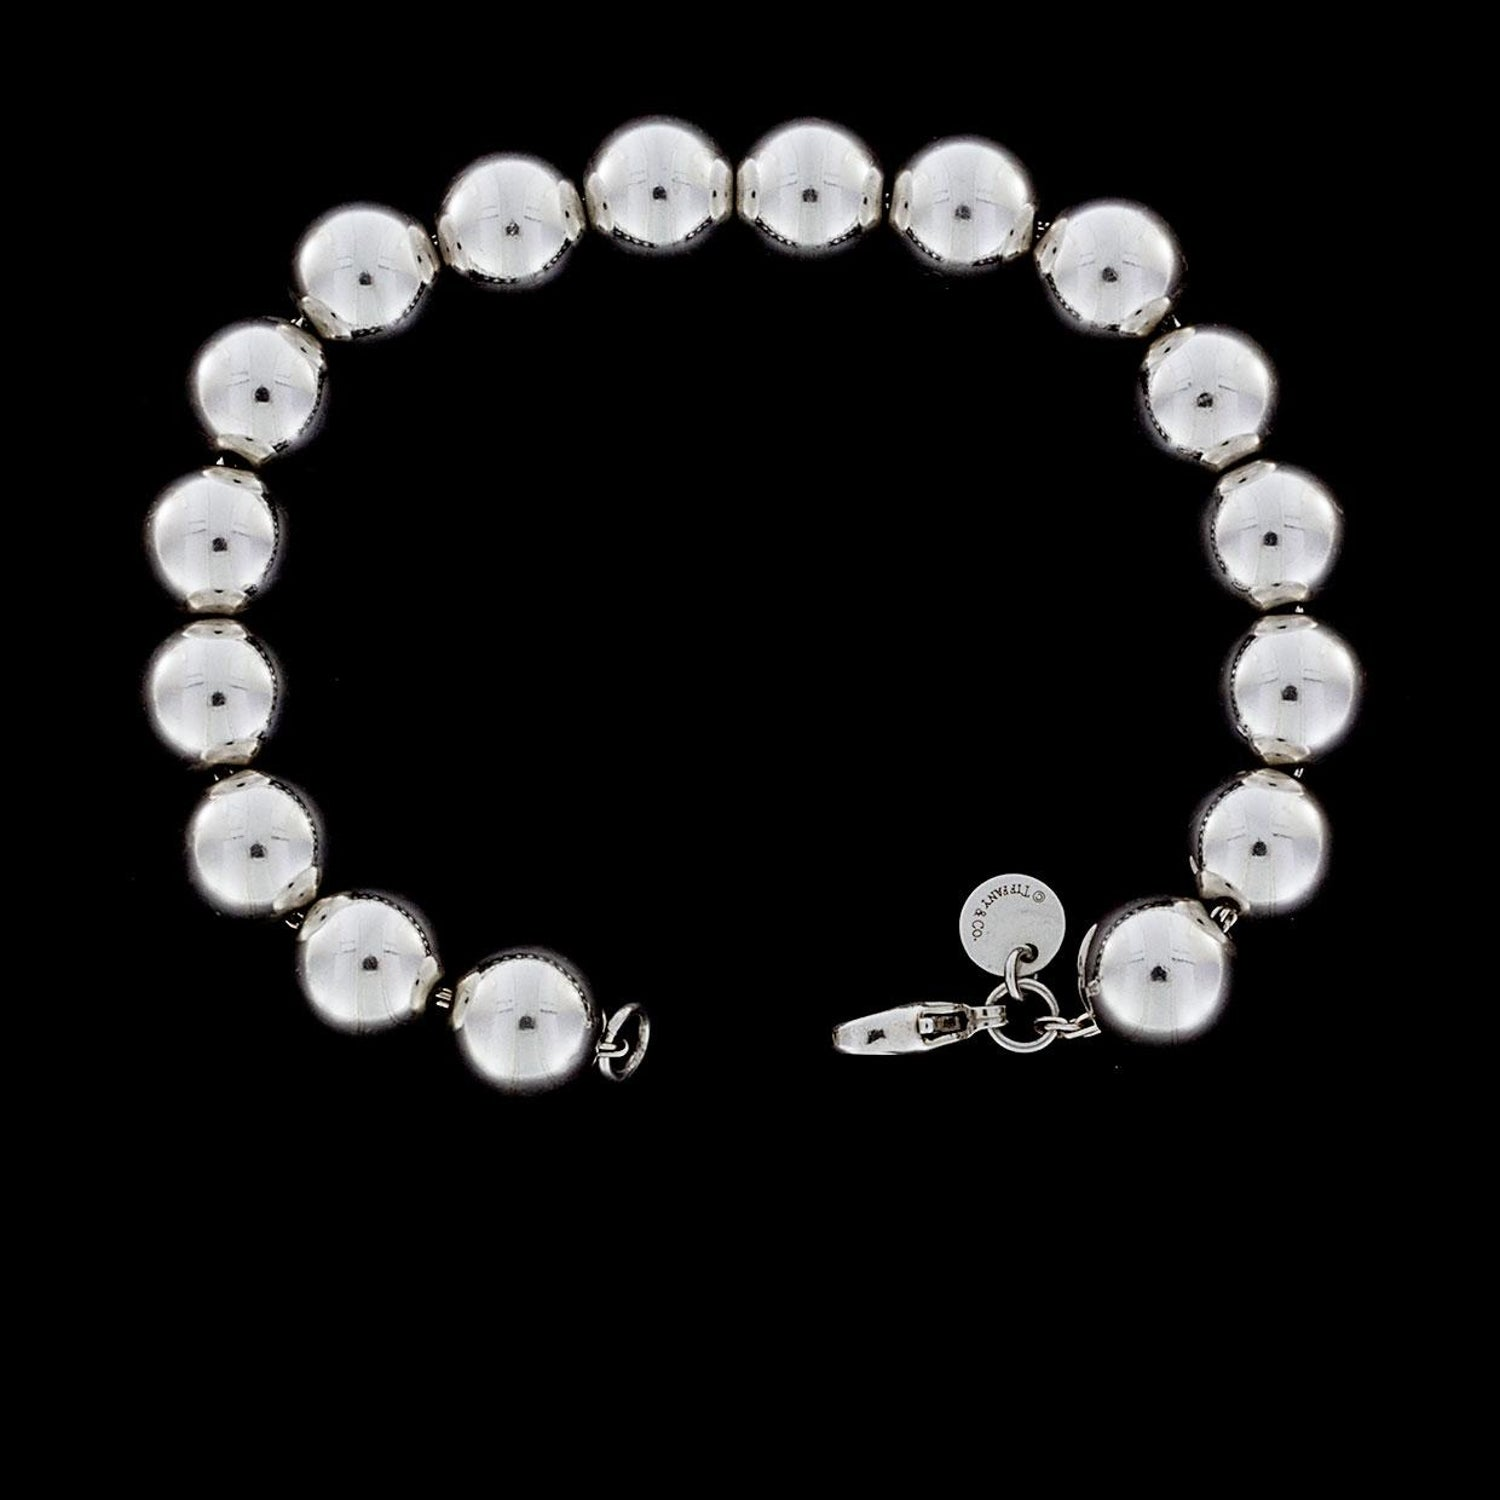 9c696a8c2 Tiffany and Co. Hardwear Sterling Silver Bead Ball Bracelet at 1stdibs